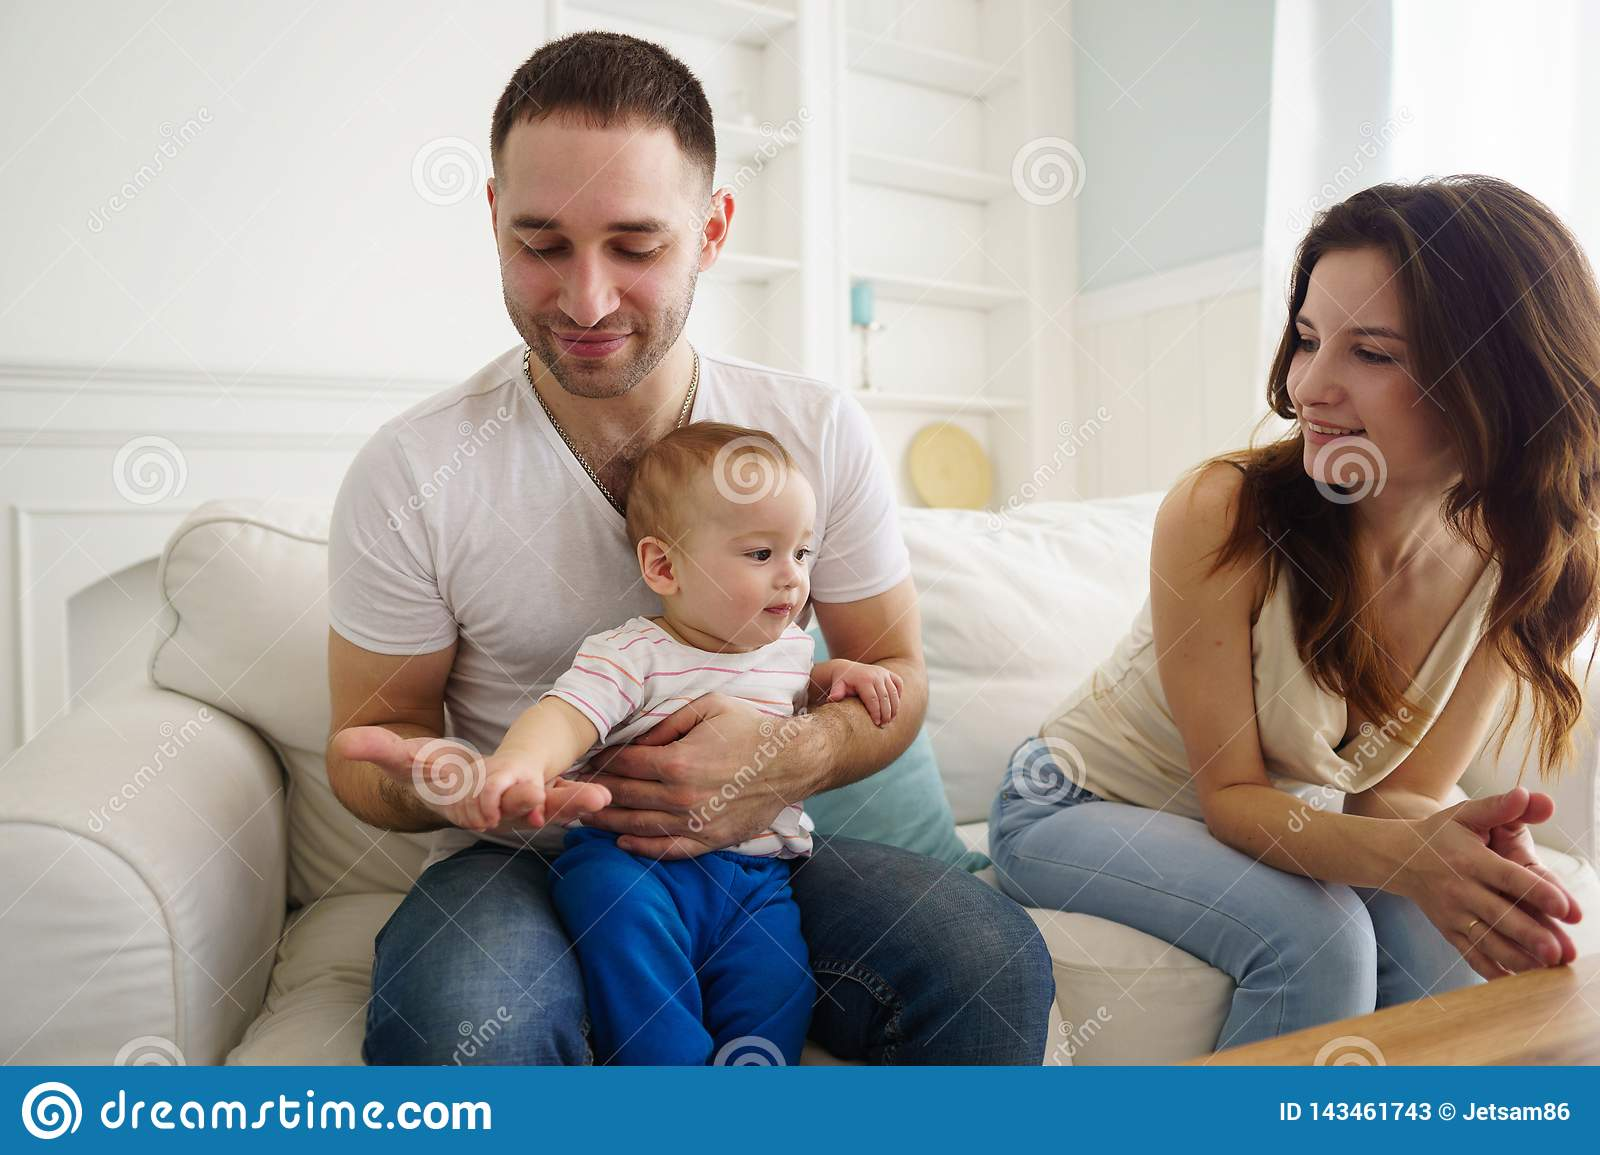 Mom Dad And Son Having Fun In Living Room Stock Image Image Of